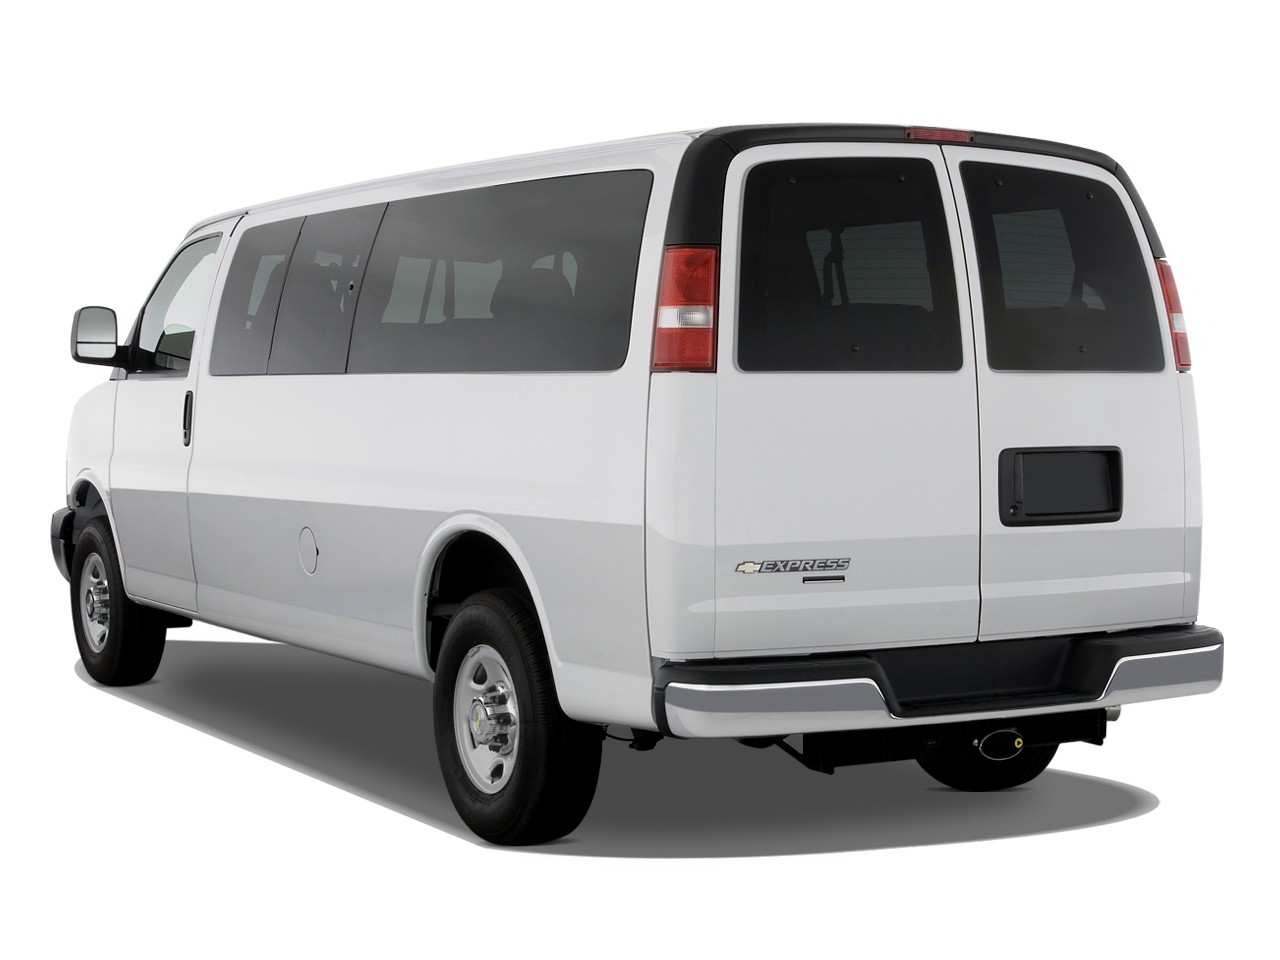 All Chevy 2014 chevy express : CHEVROLET Express specs - 2008, 2009, 2010, 2011, 2012, 2013, 2014 ...